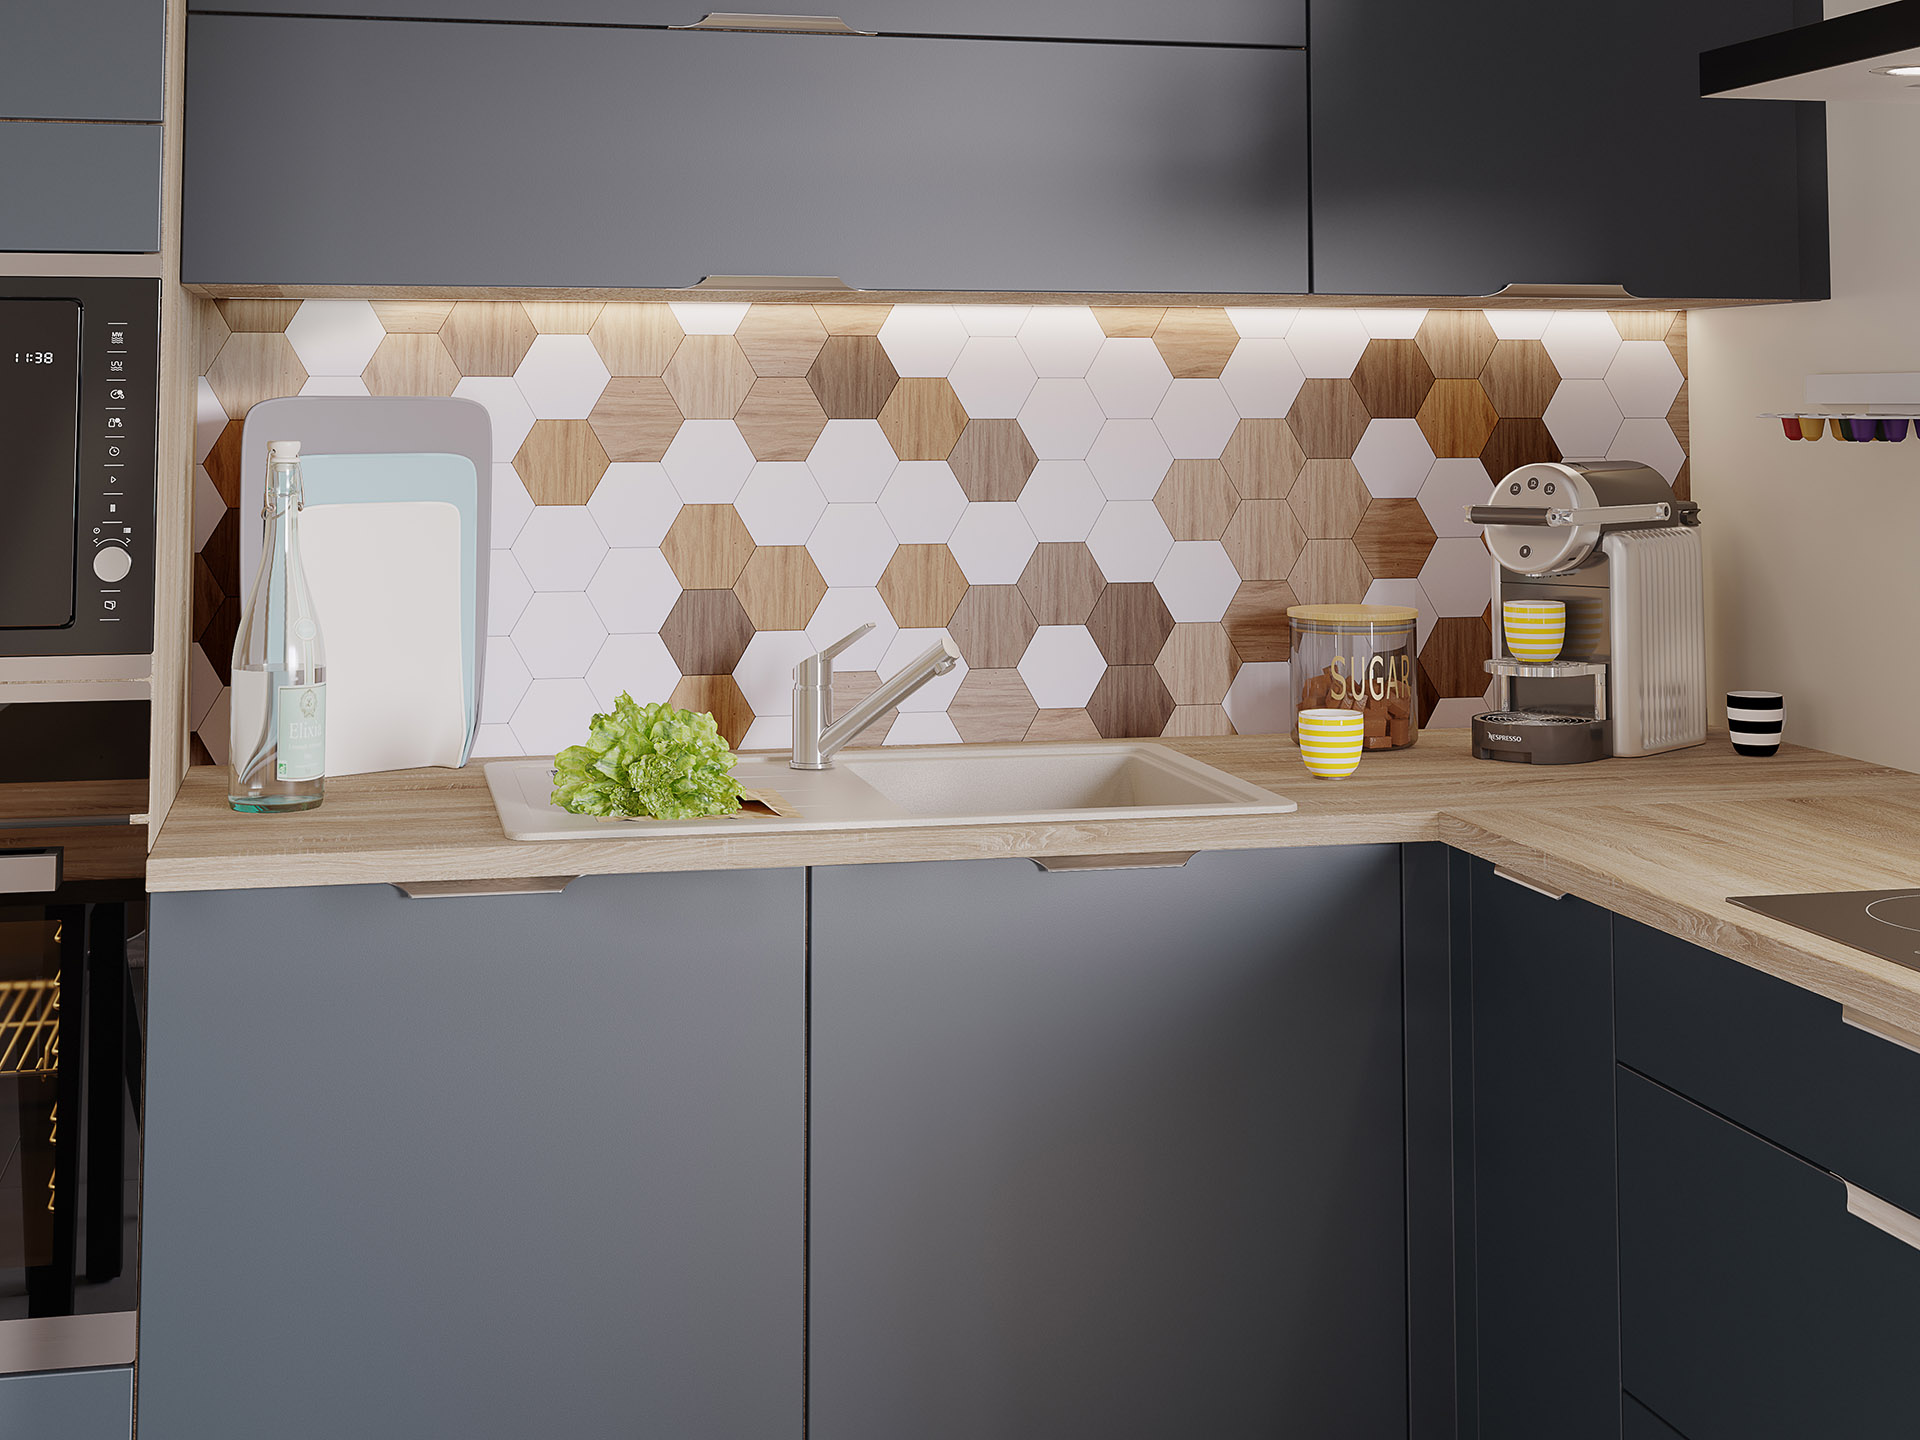 Sink corner of a modern black and wood kitchen in 3D